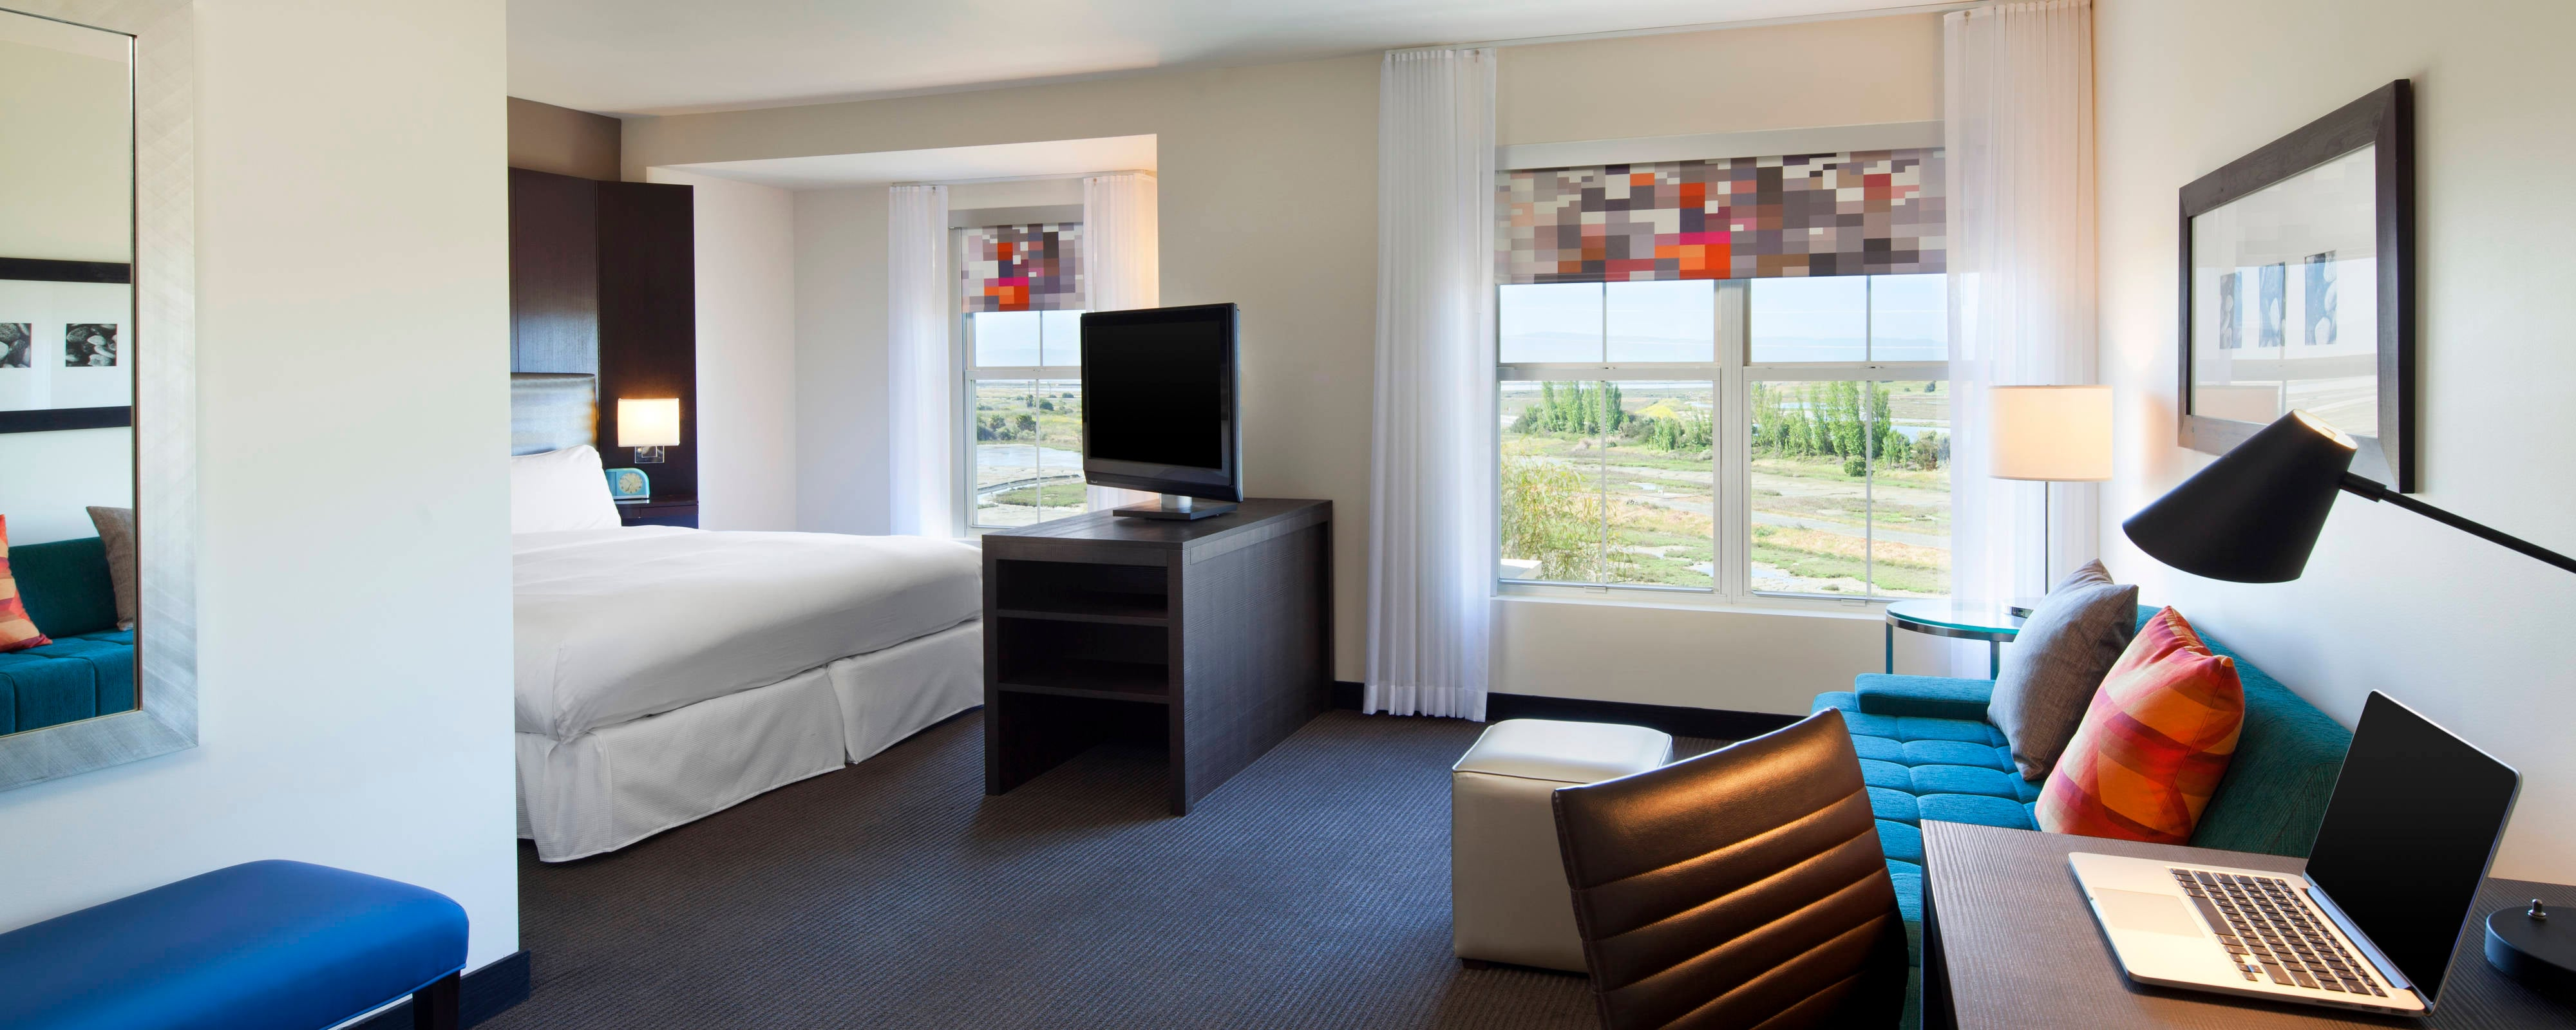 Aloft King Suite (with Laptop)